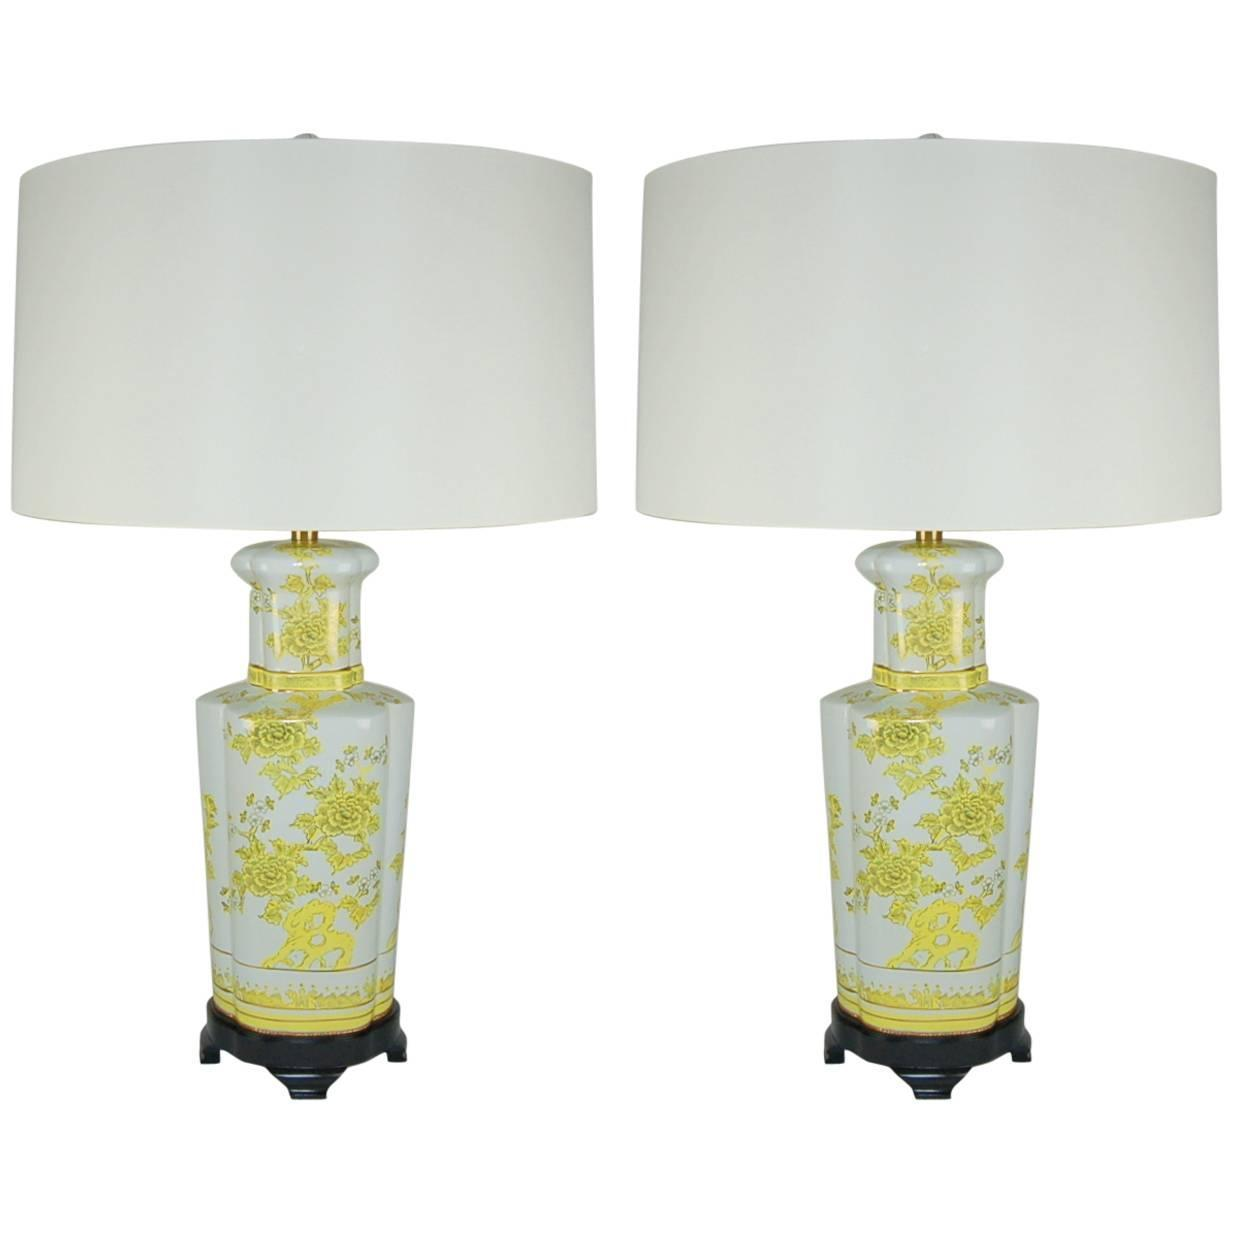 Antique porcelain table lamps - Pair Of Vintage Porcelain Lamps By The Marbro Lamp Company